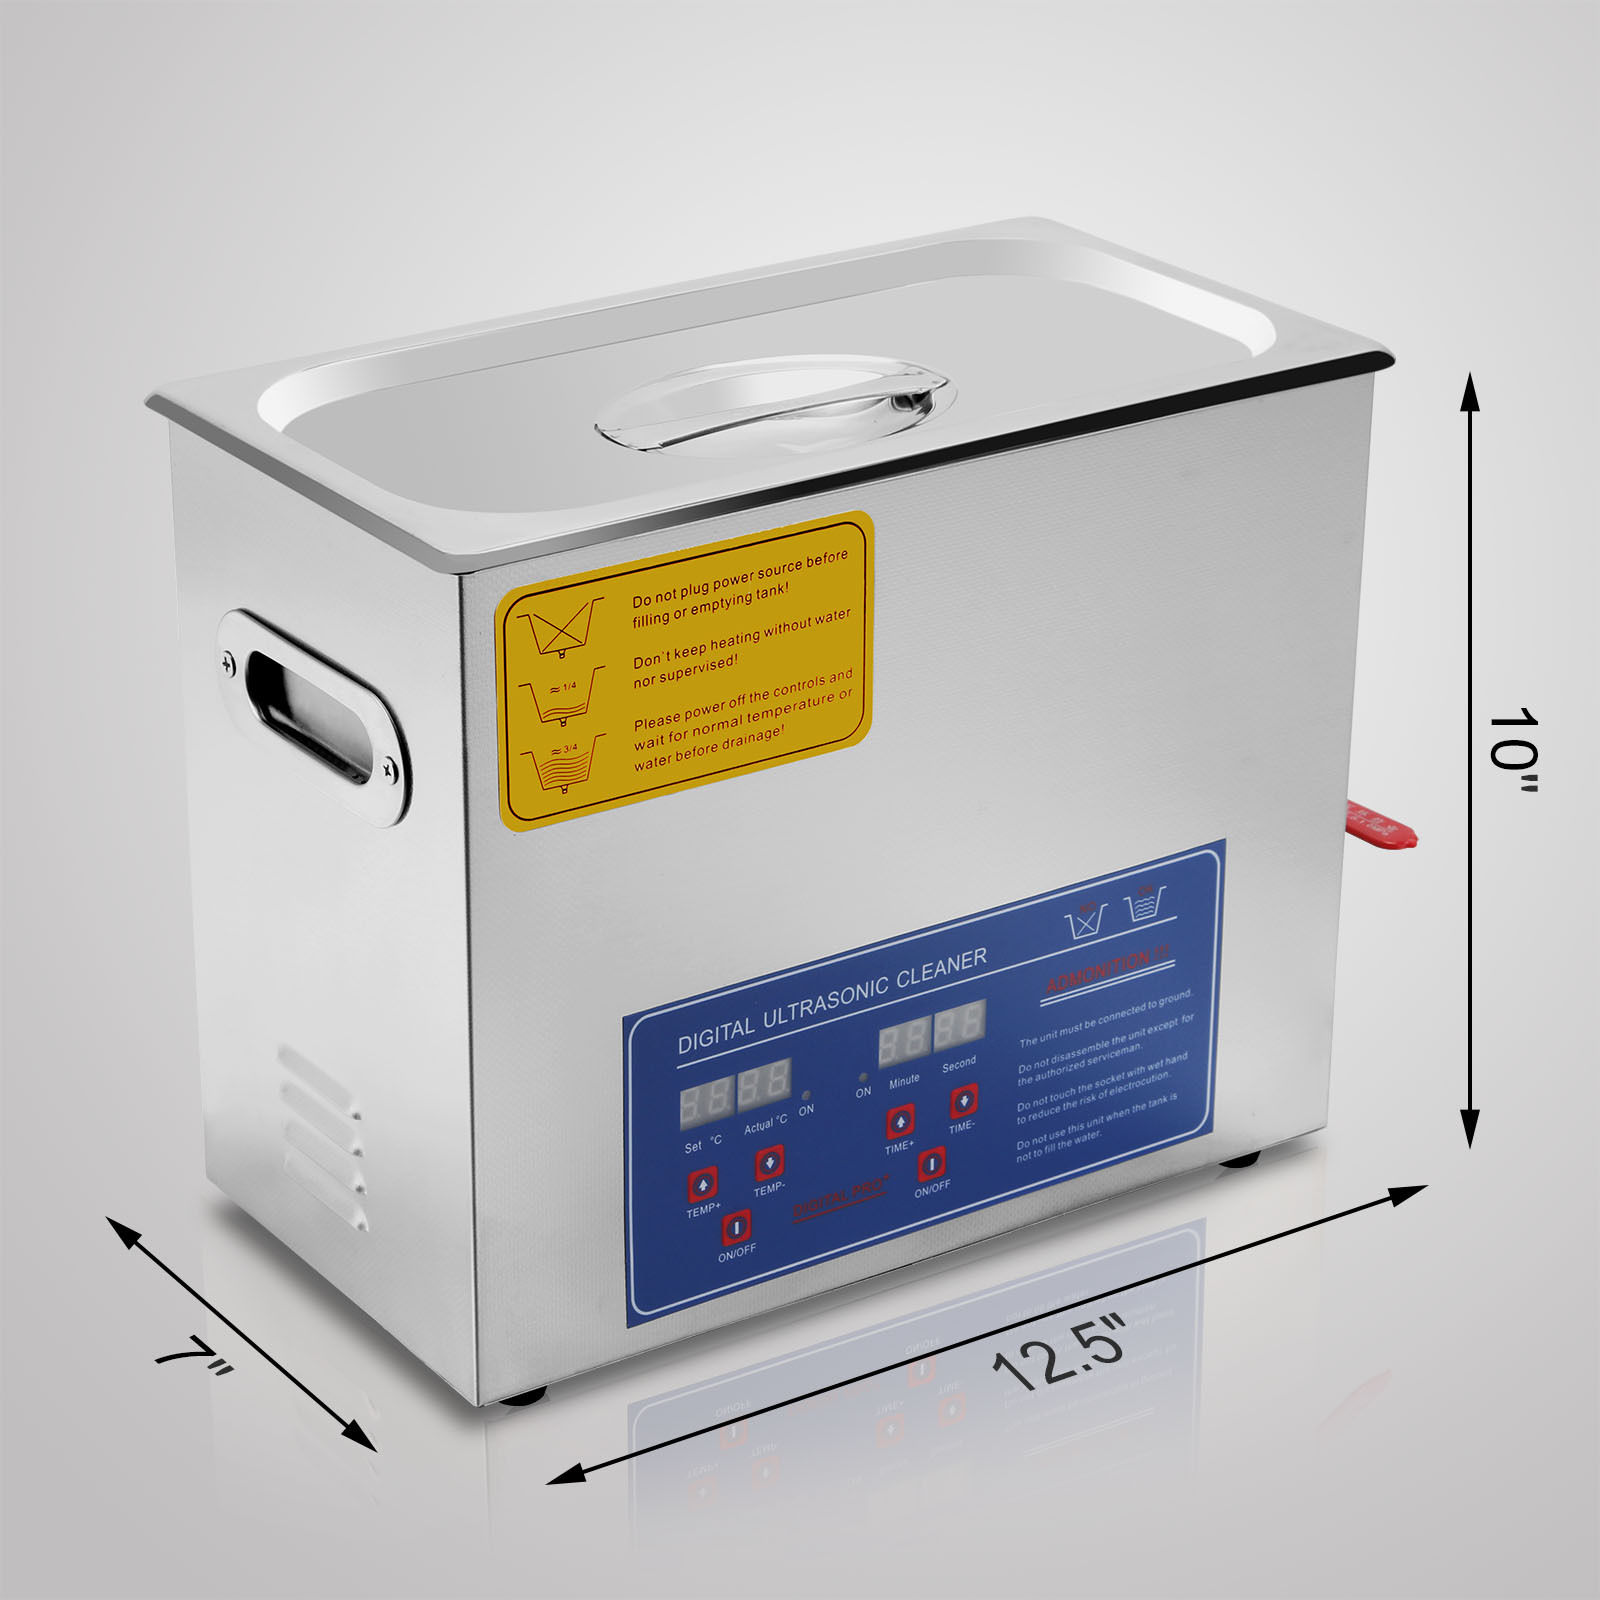 6 Liter Stainless Steel Digital Ultrasonic Cleaner